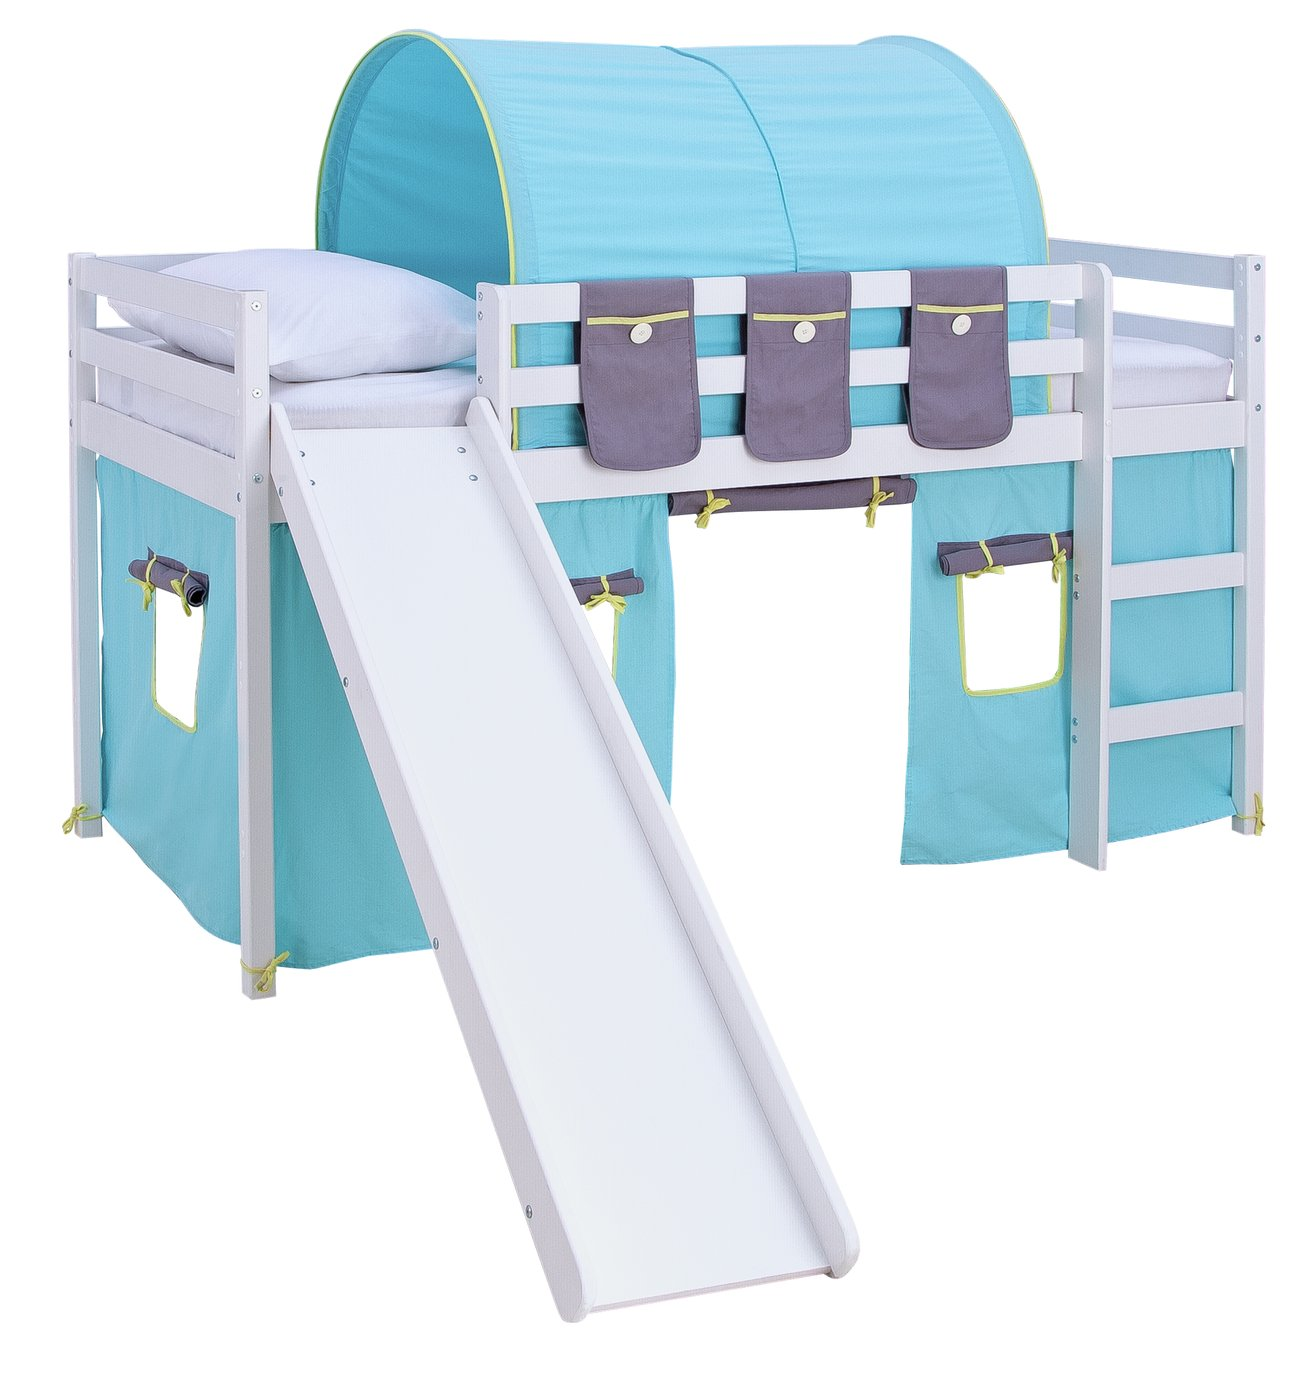 Argos Home Kaycie White Midsleeper,Slide,Turq Tent& Mattress